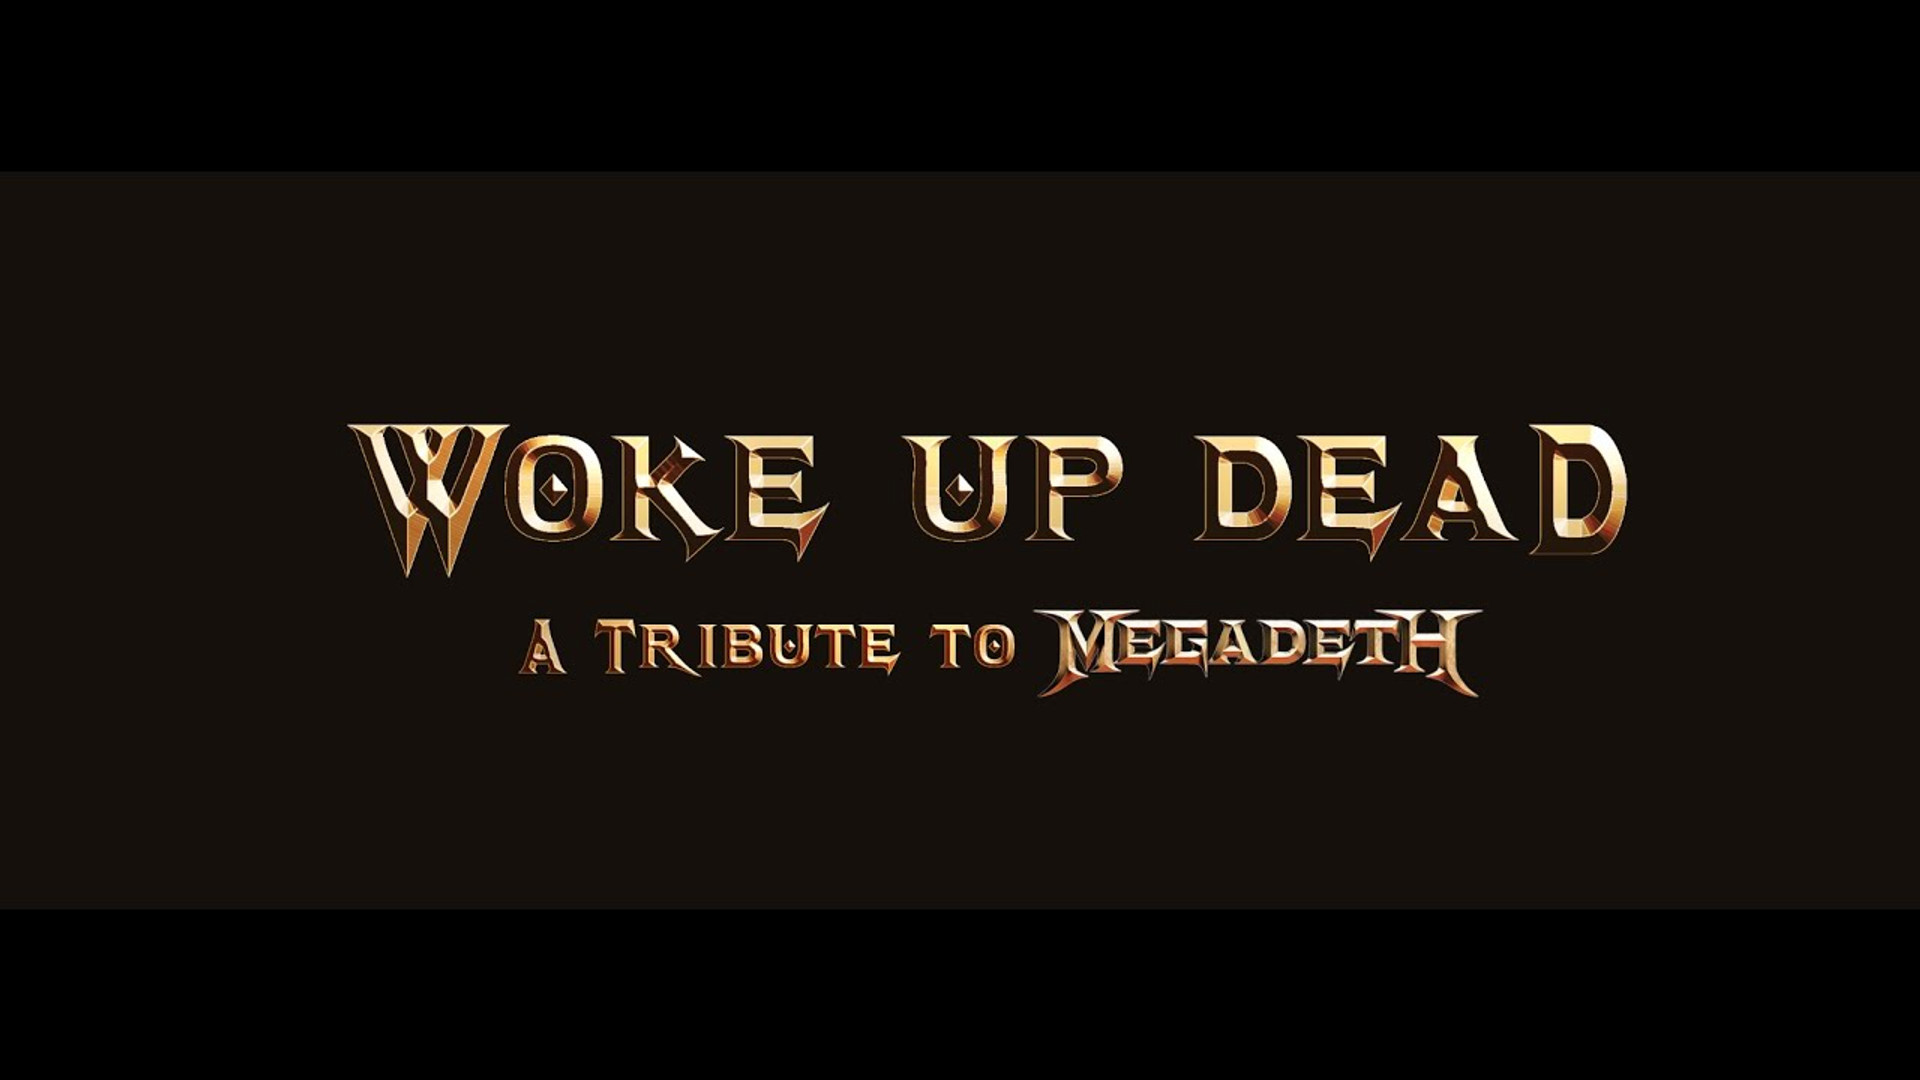 Woke Up Dead - A Tribute to Megadeth